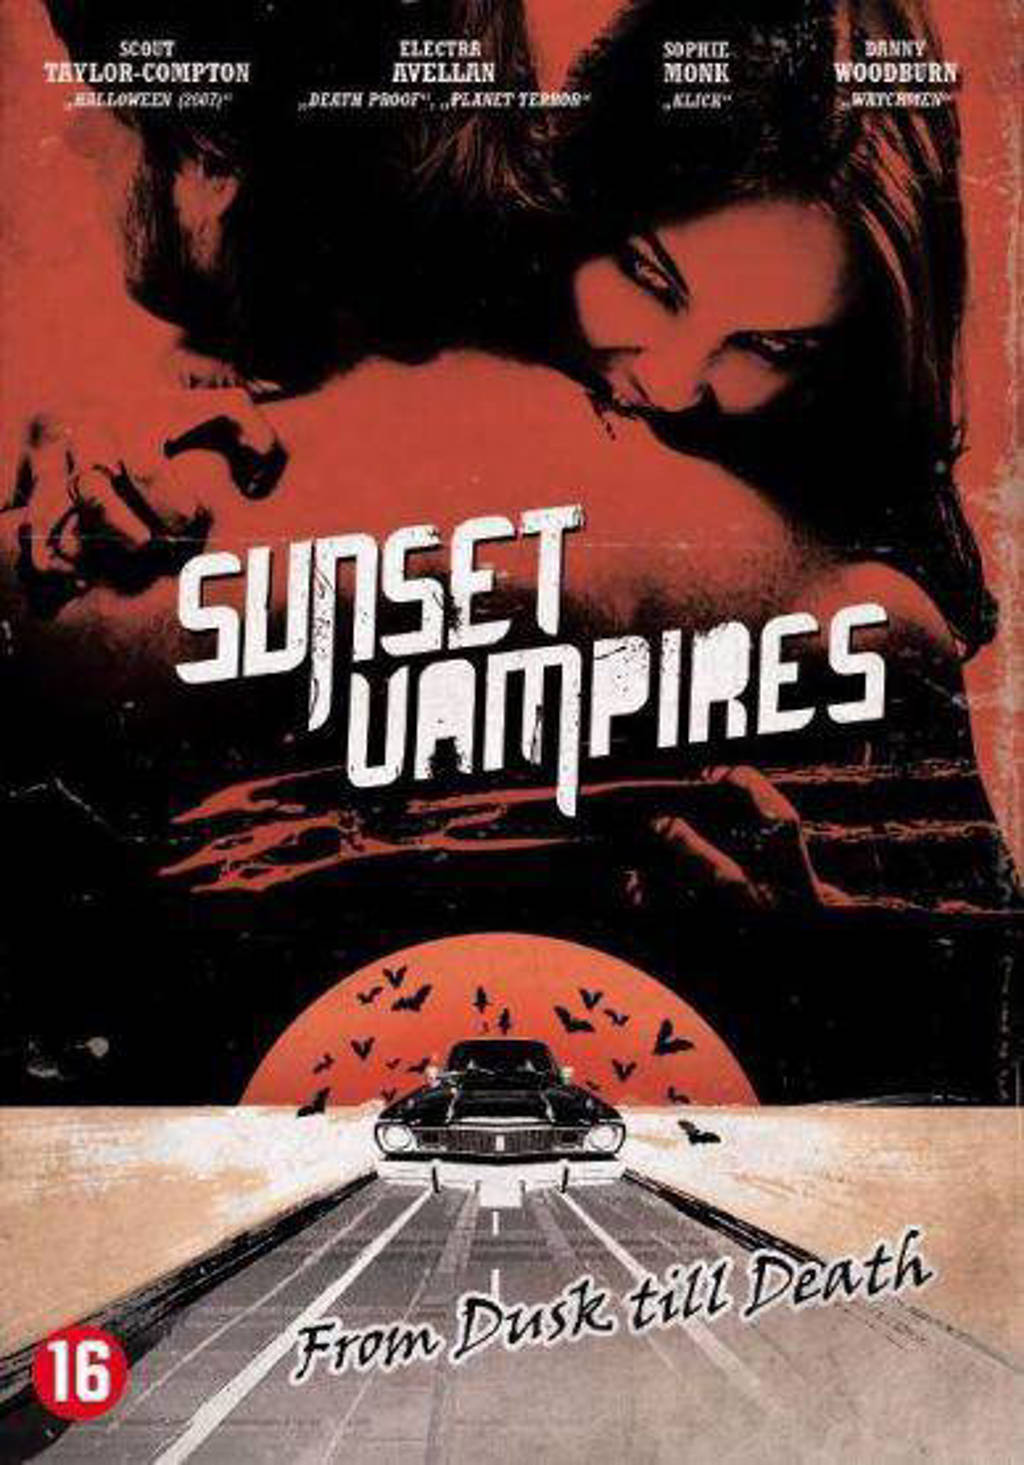 Sunset vampires (DVD)